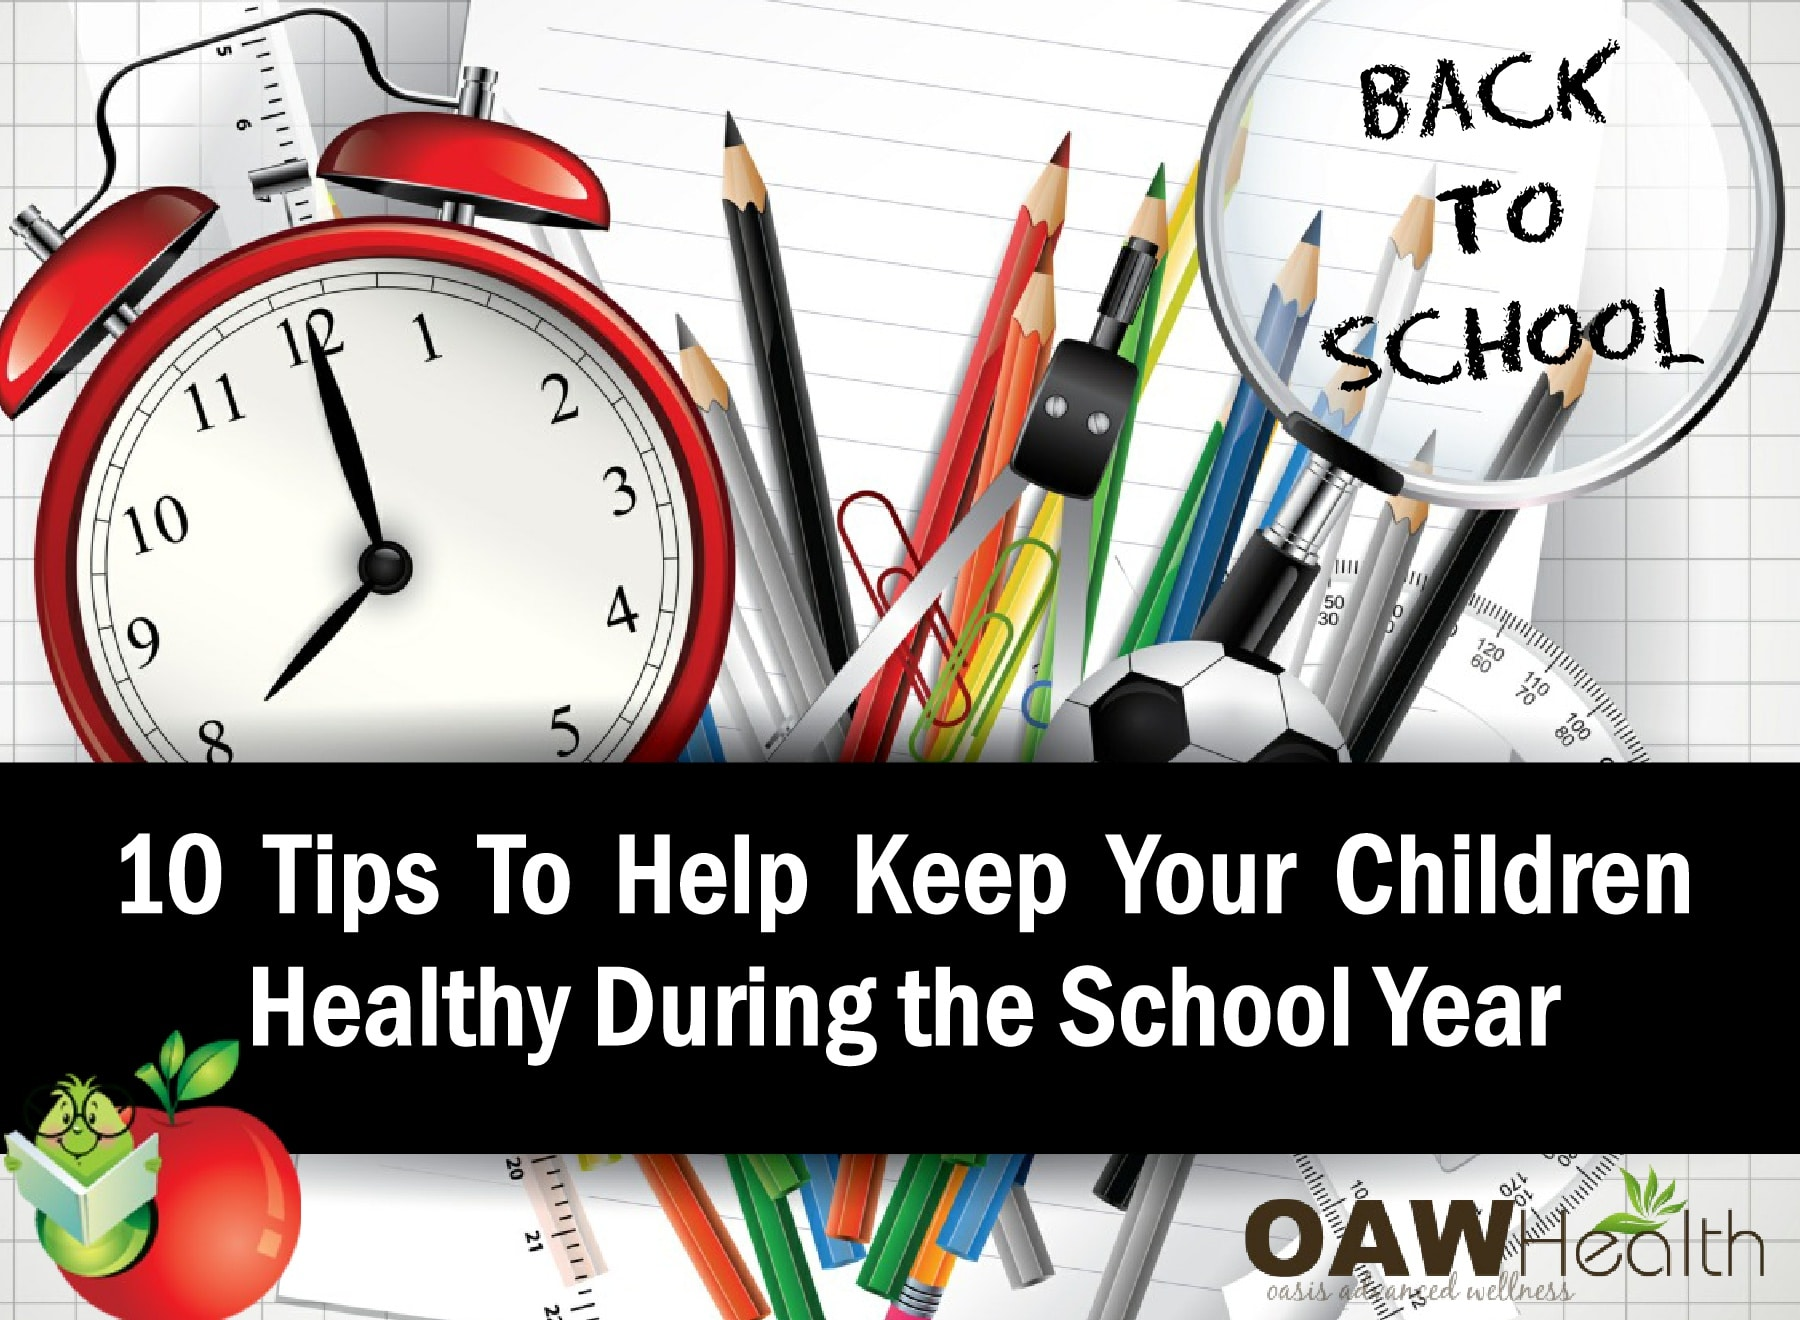 Back To School Health – 10 Tips to Keep Your Children Healthy